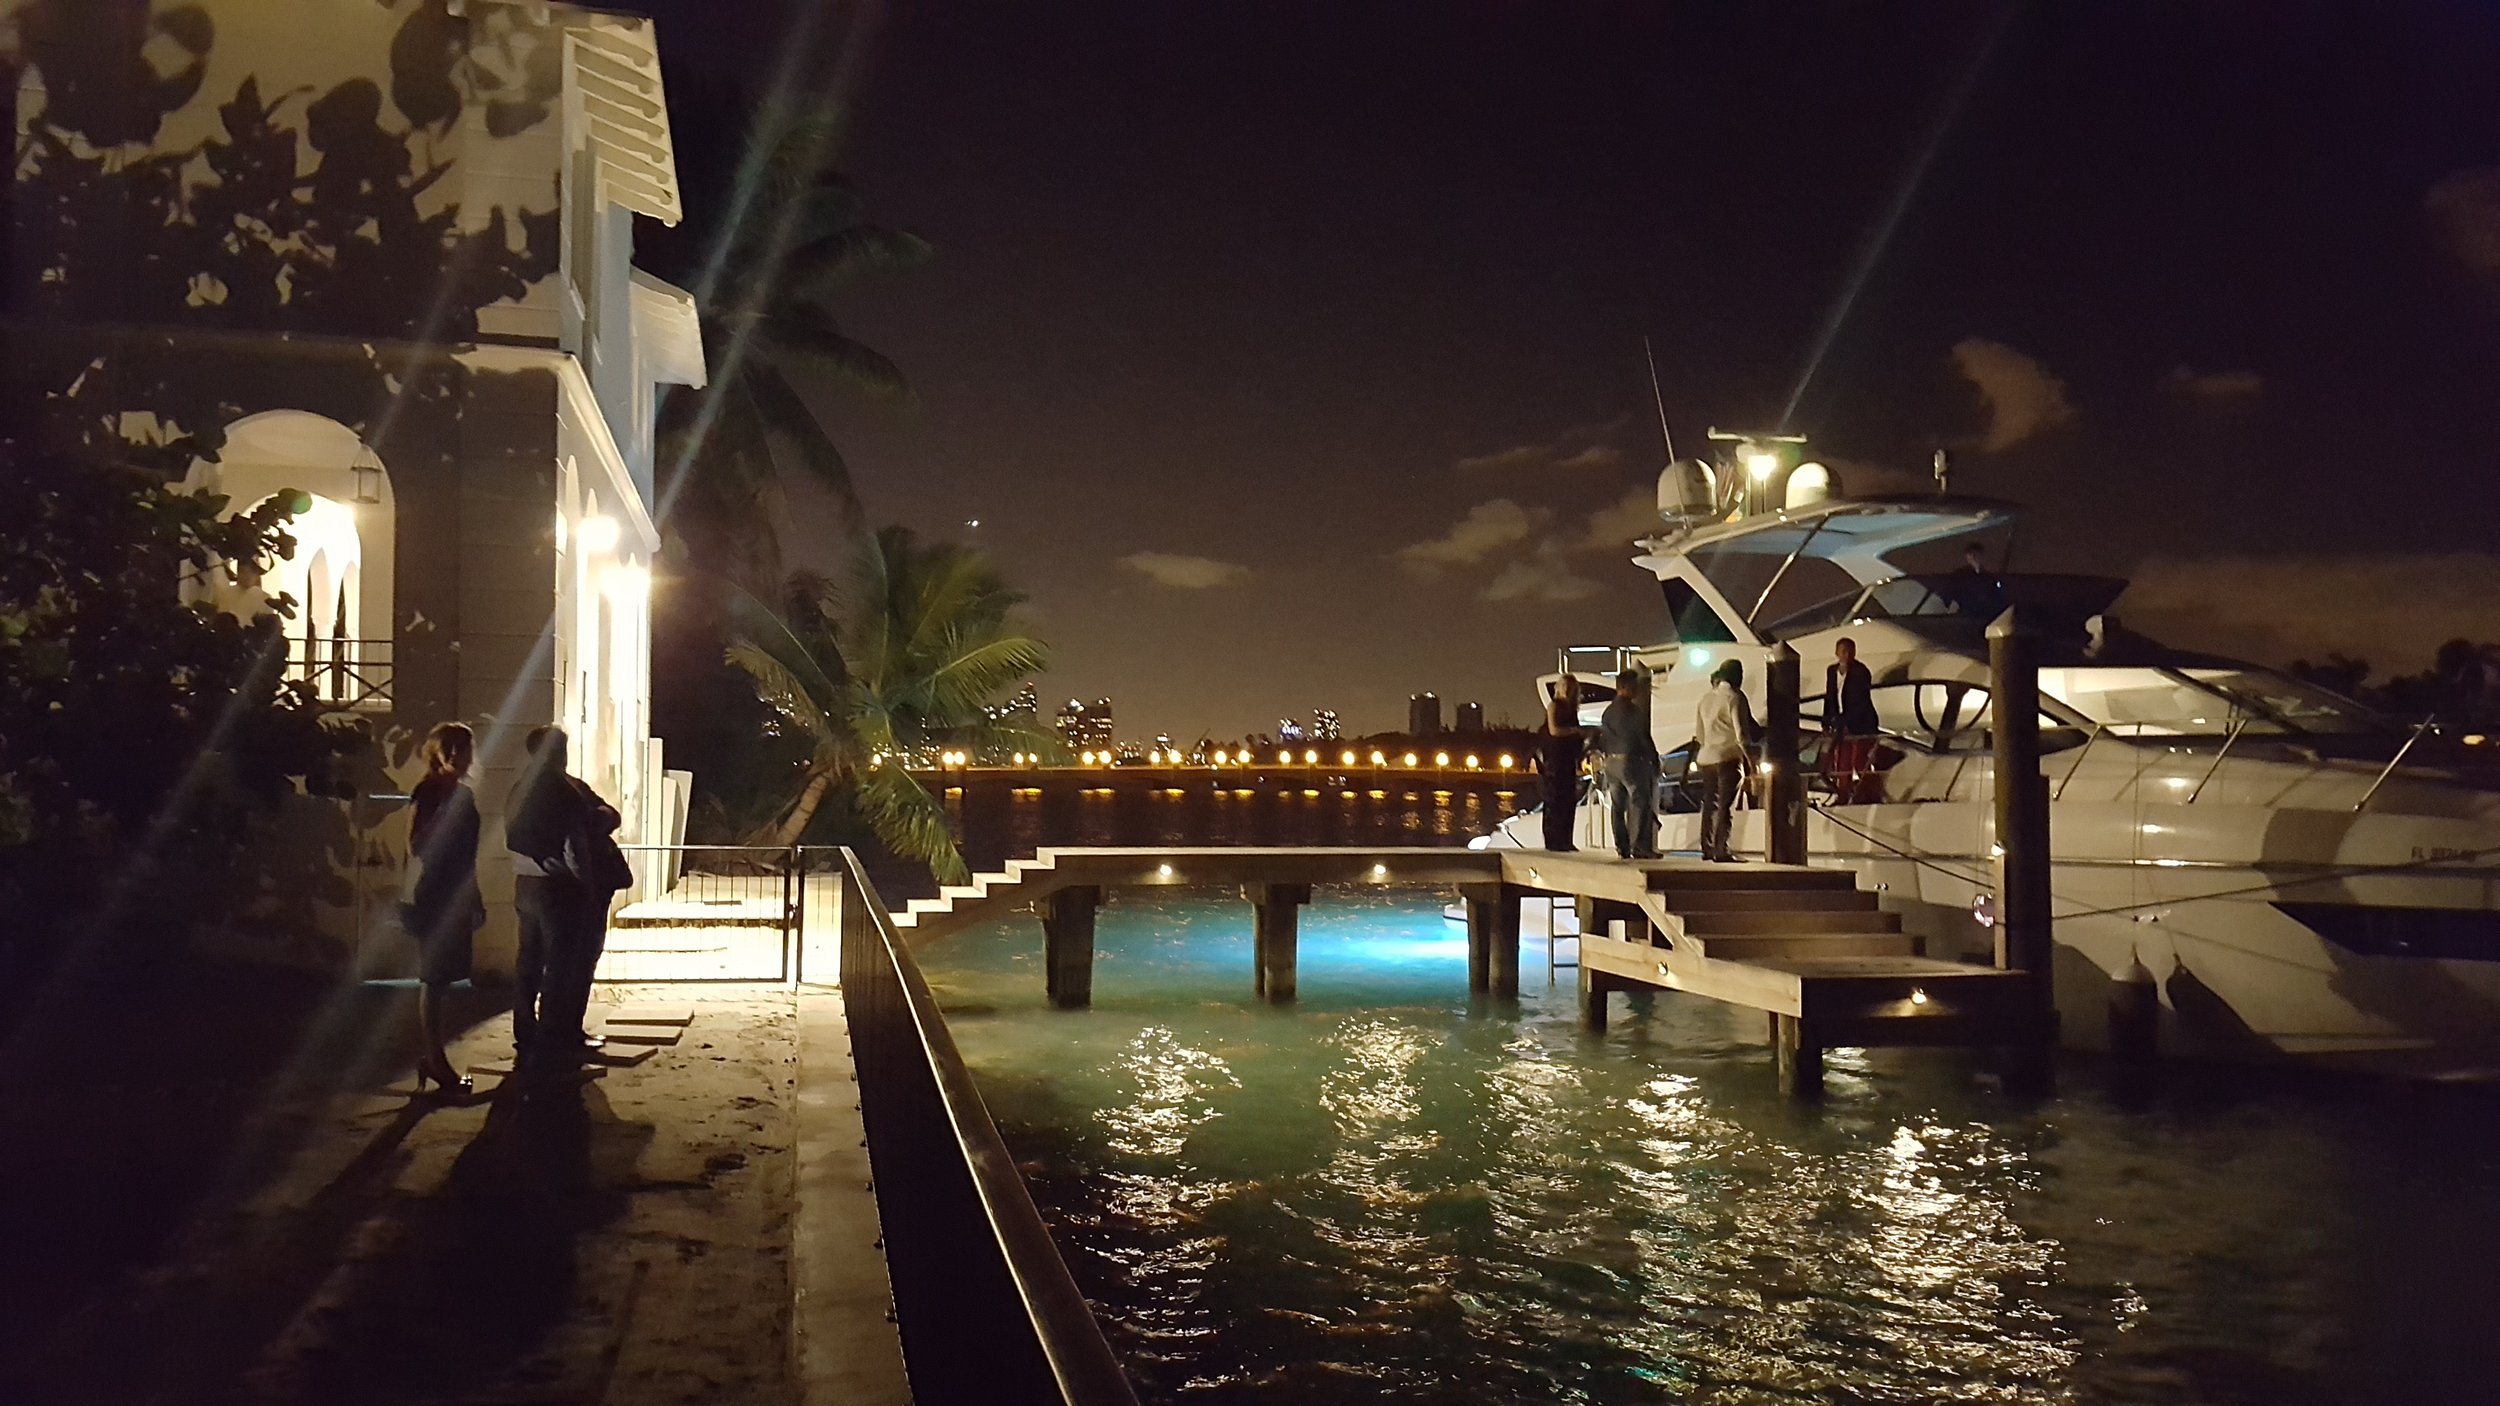 Dock area at 93 Palm, former home of Al Capone.